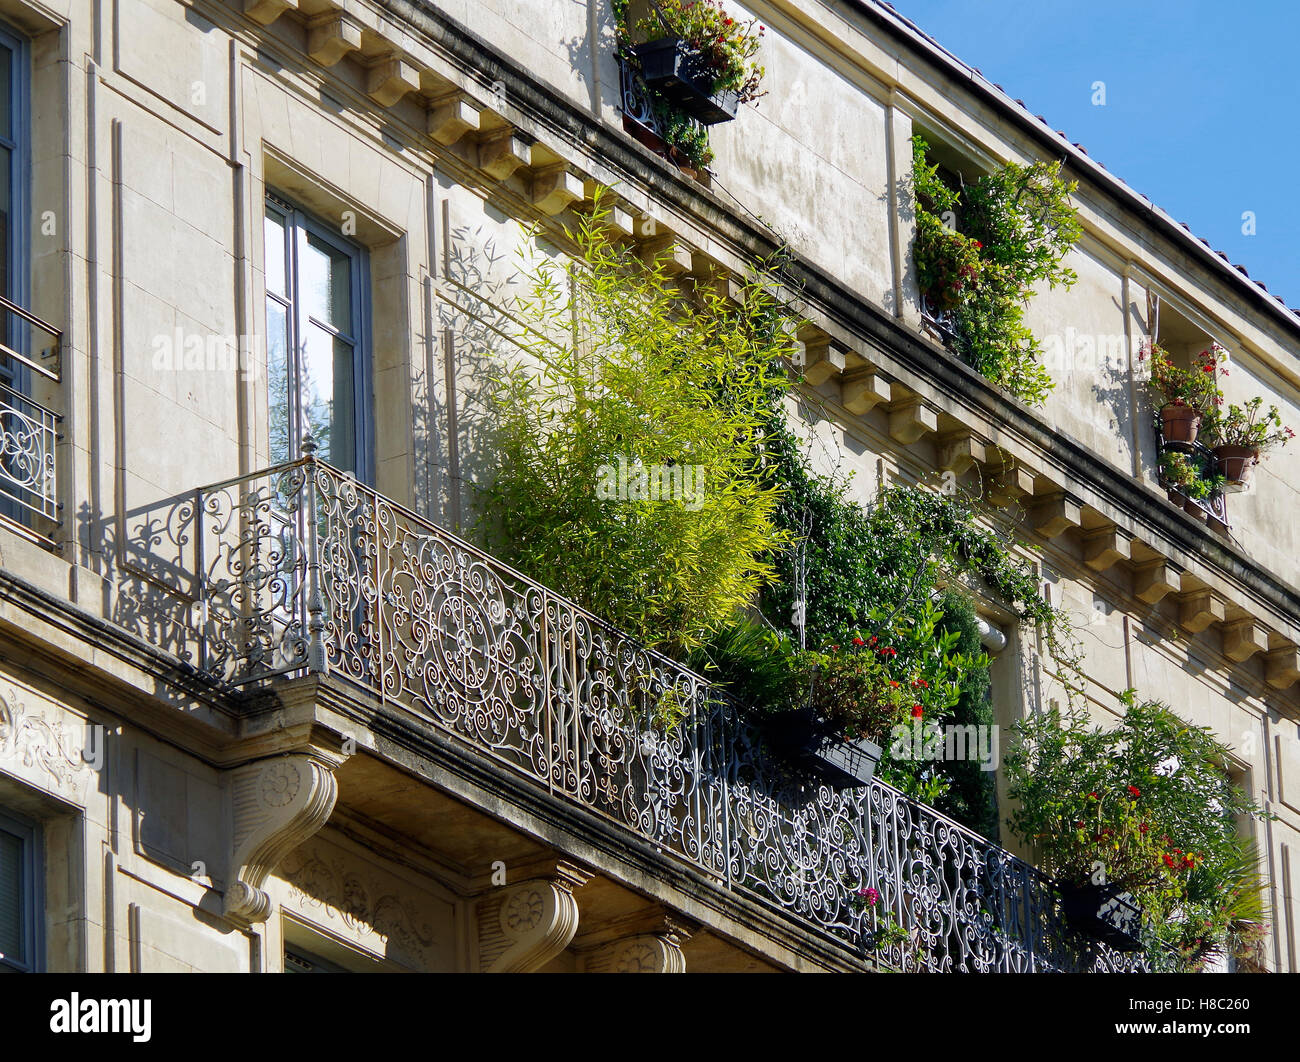 Nimes, balconies of C18 houses smothered in plants - Stock Image